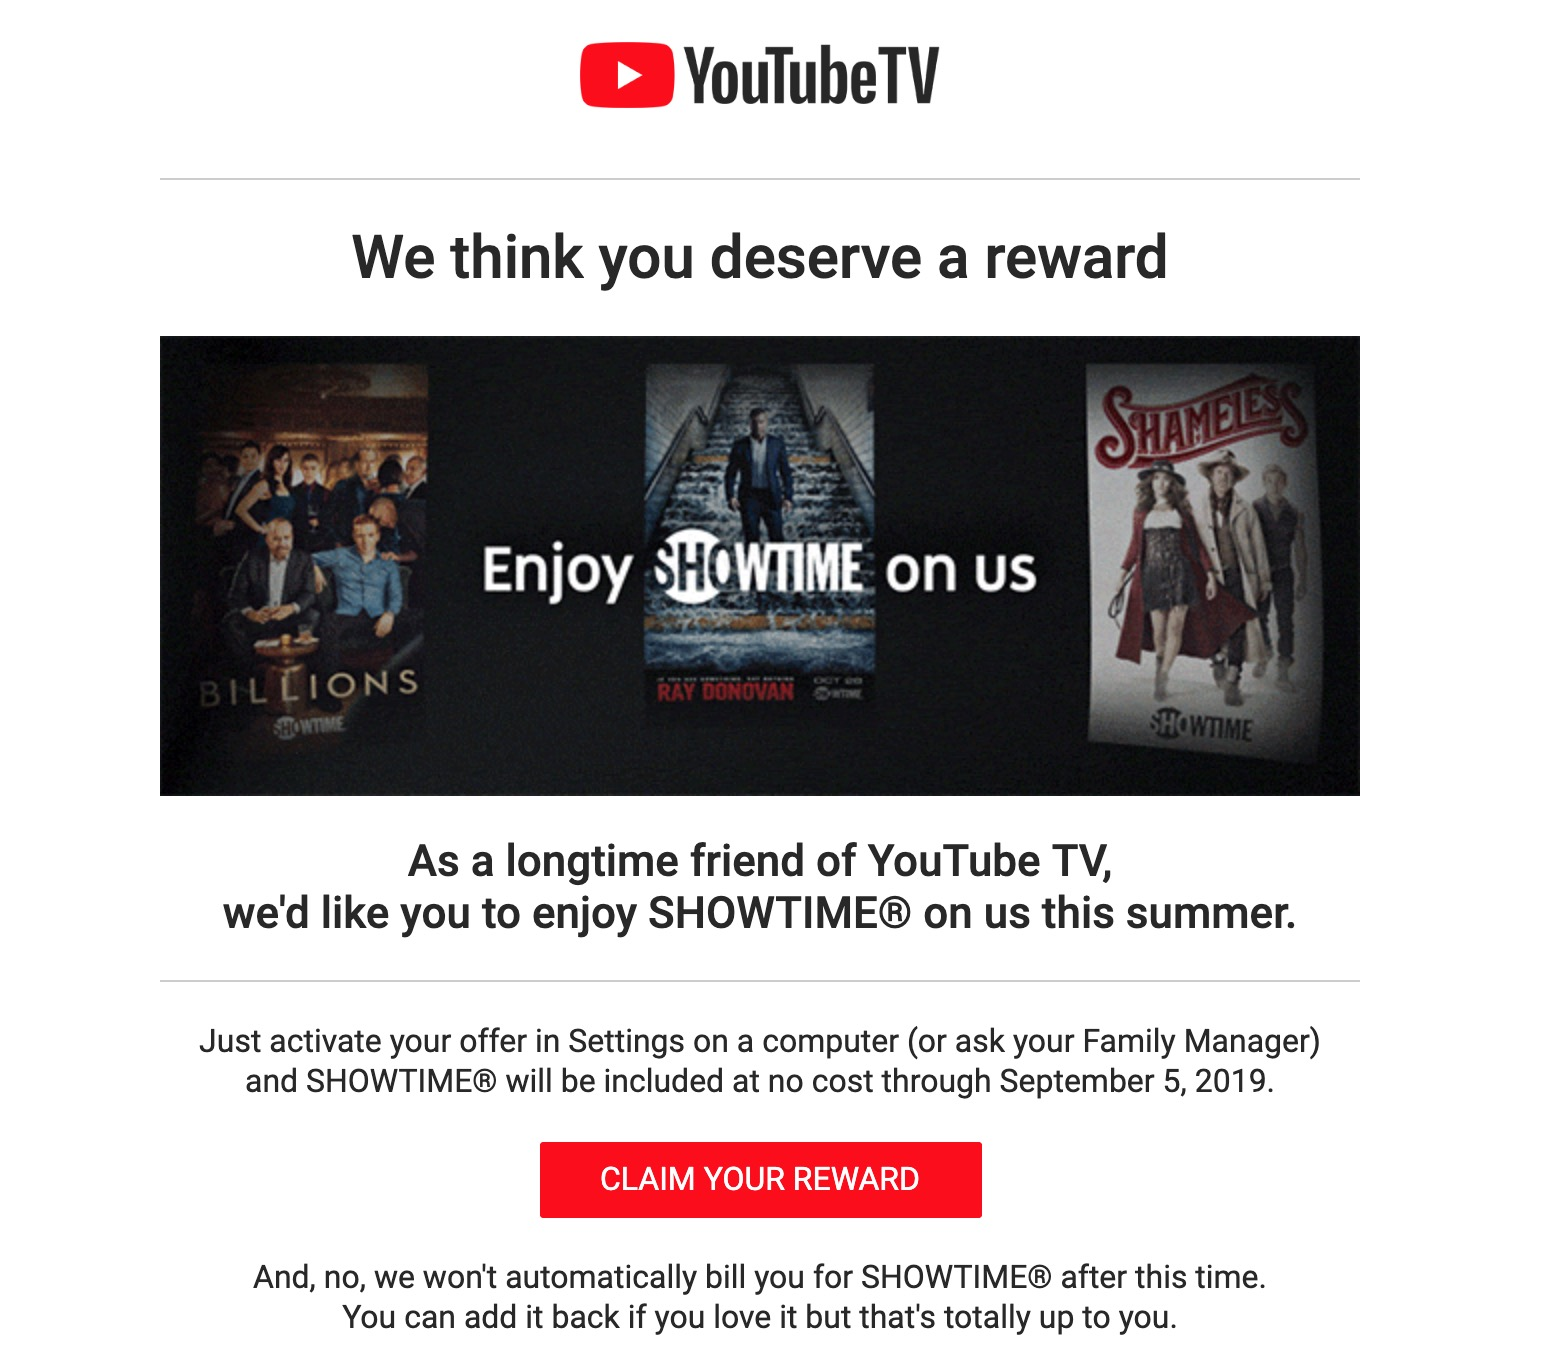 Youtube Tv Offering Longtime Subscribers Free Showtime 9to5google